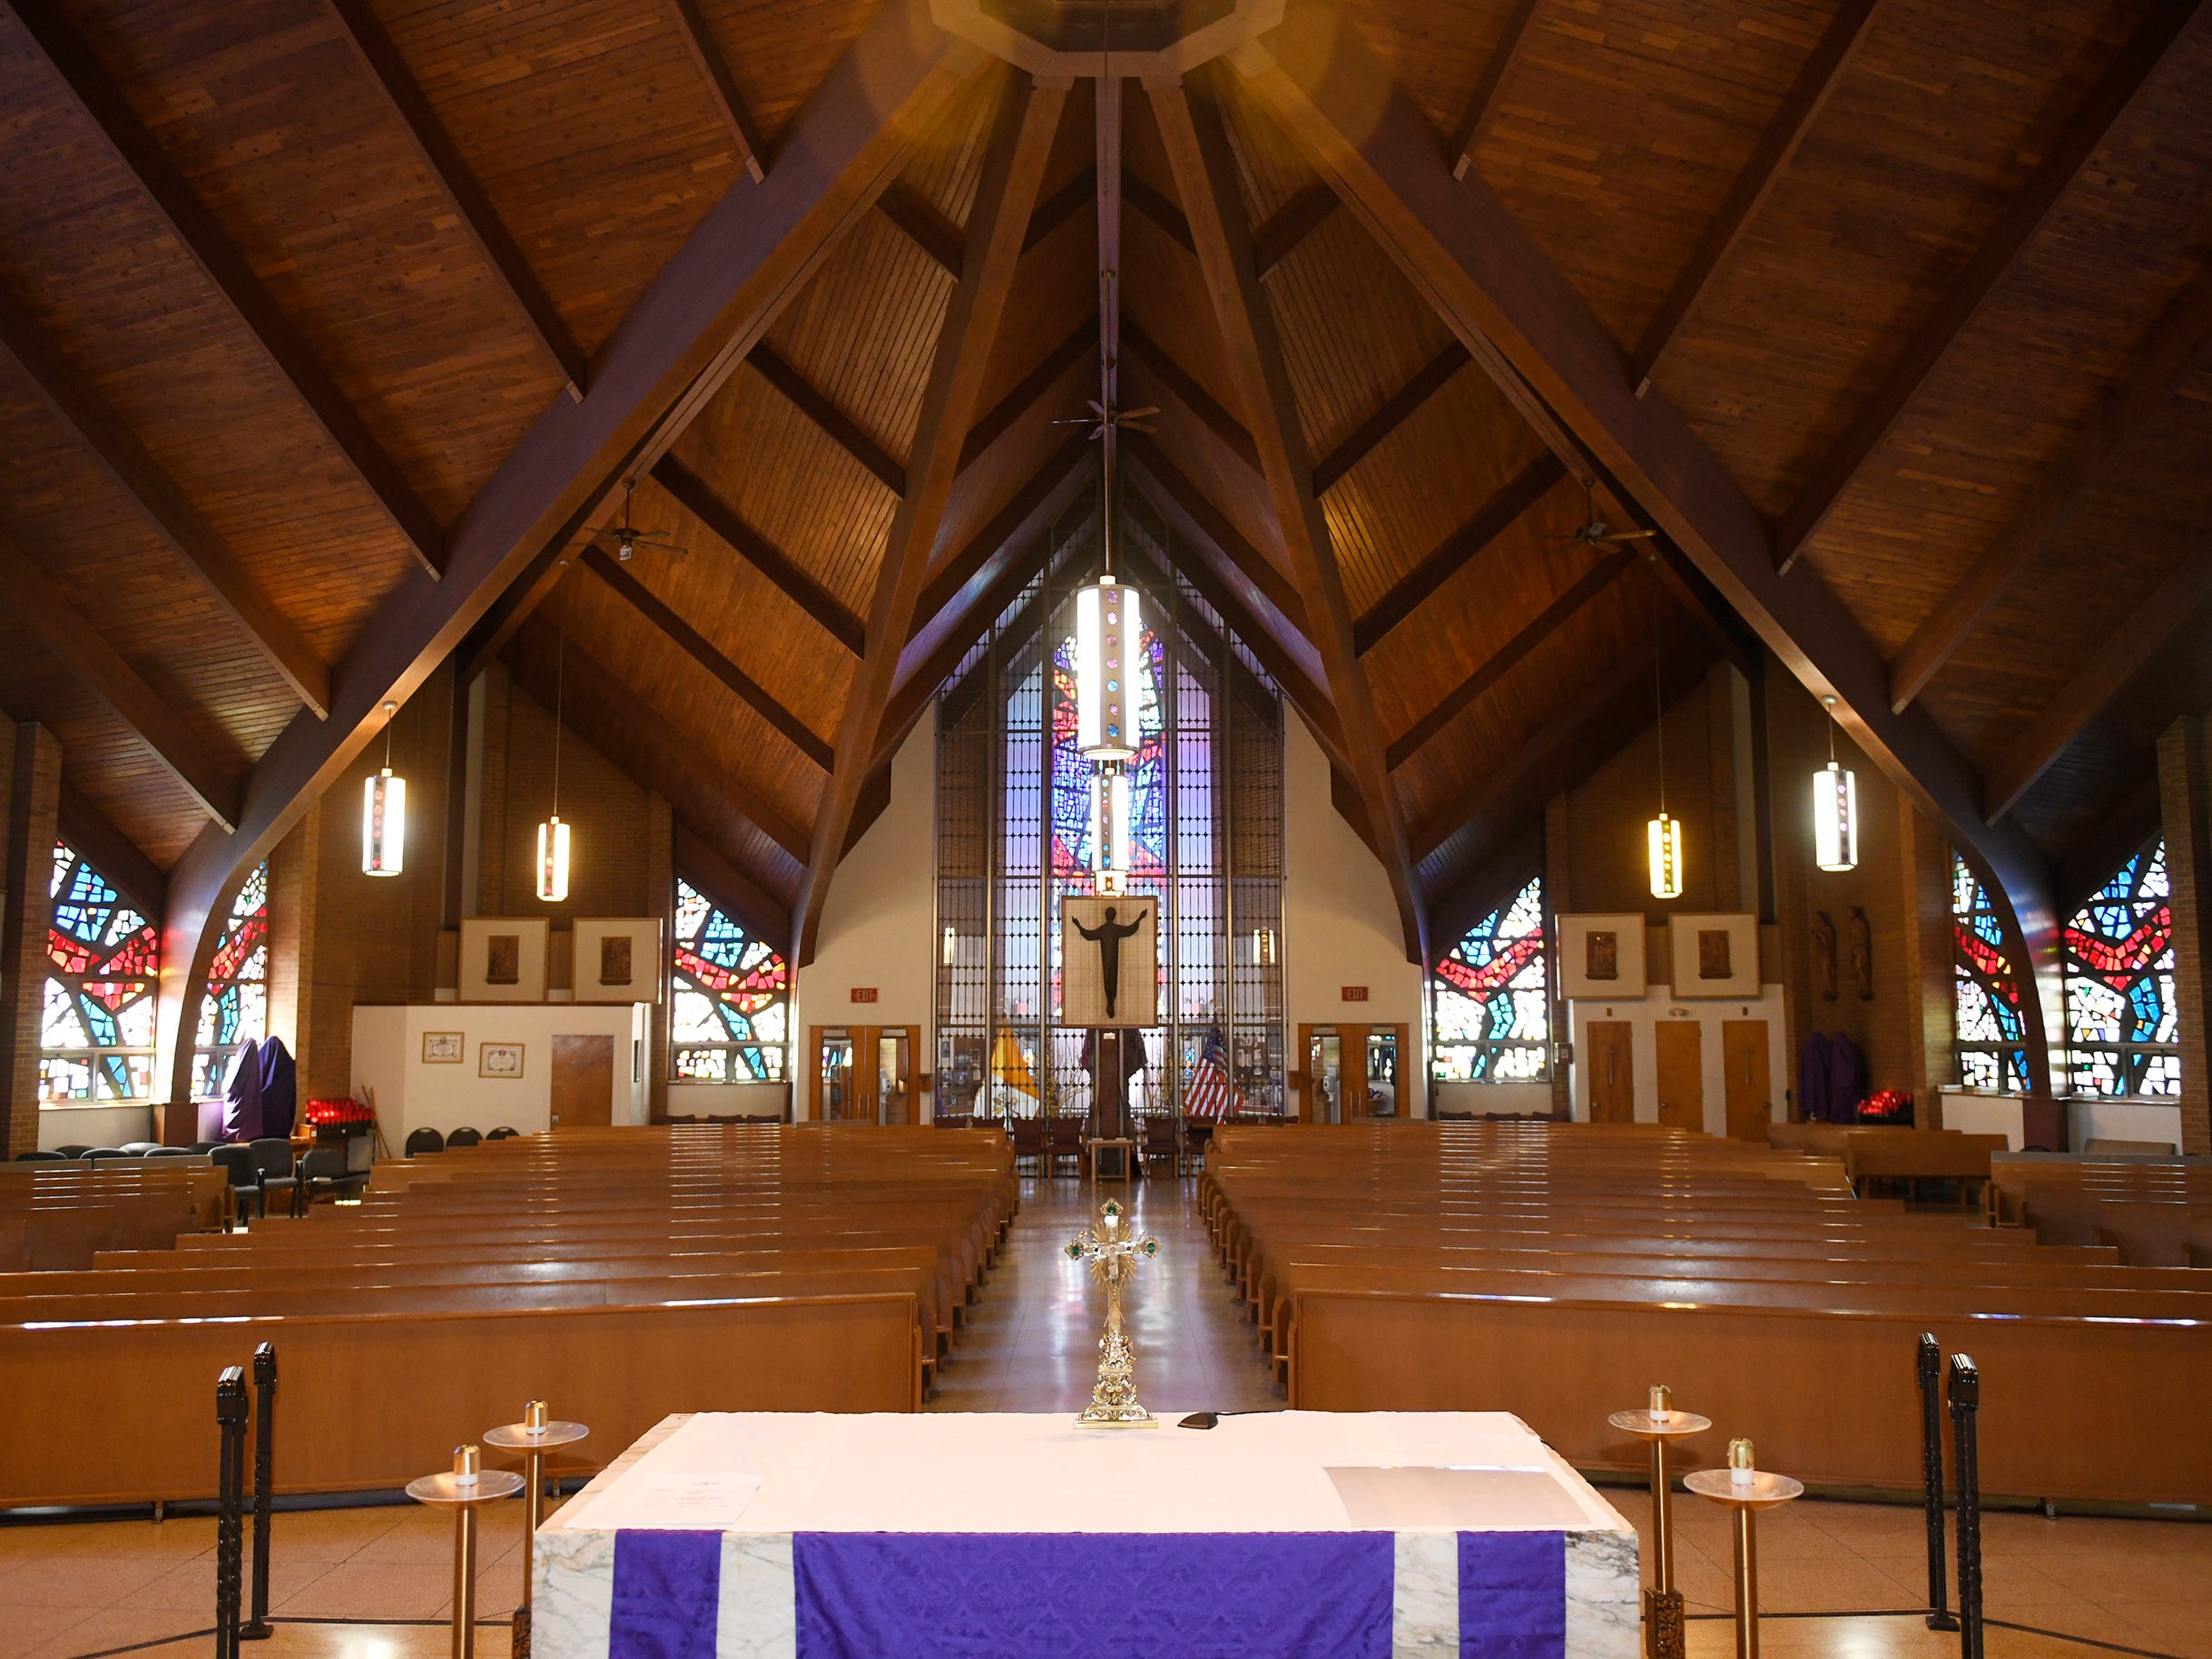 Our Lady of Pompeii Roman Catholic Church in Vineland, founded in the early 1900s, serves the descendants of the Southern Italian immigrants.